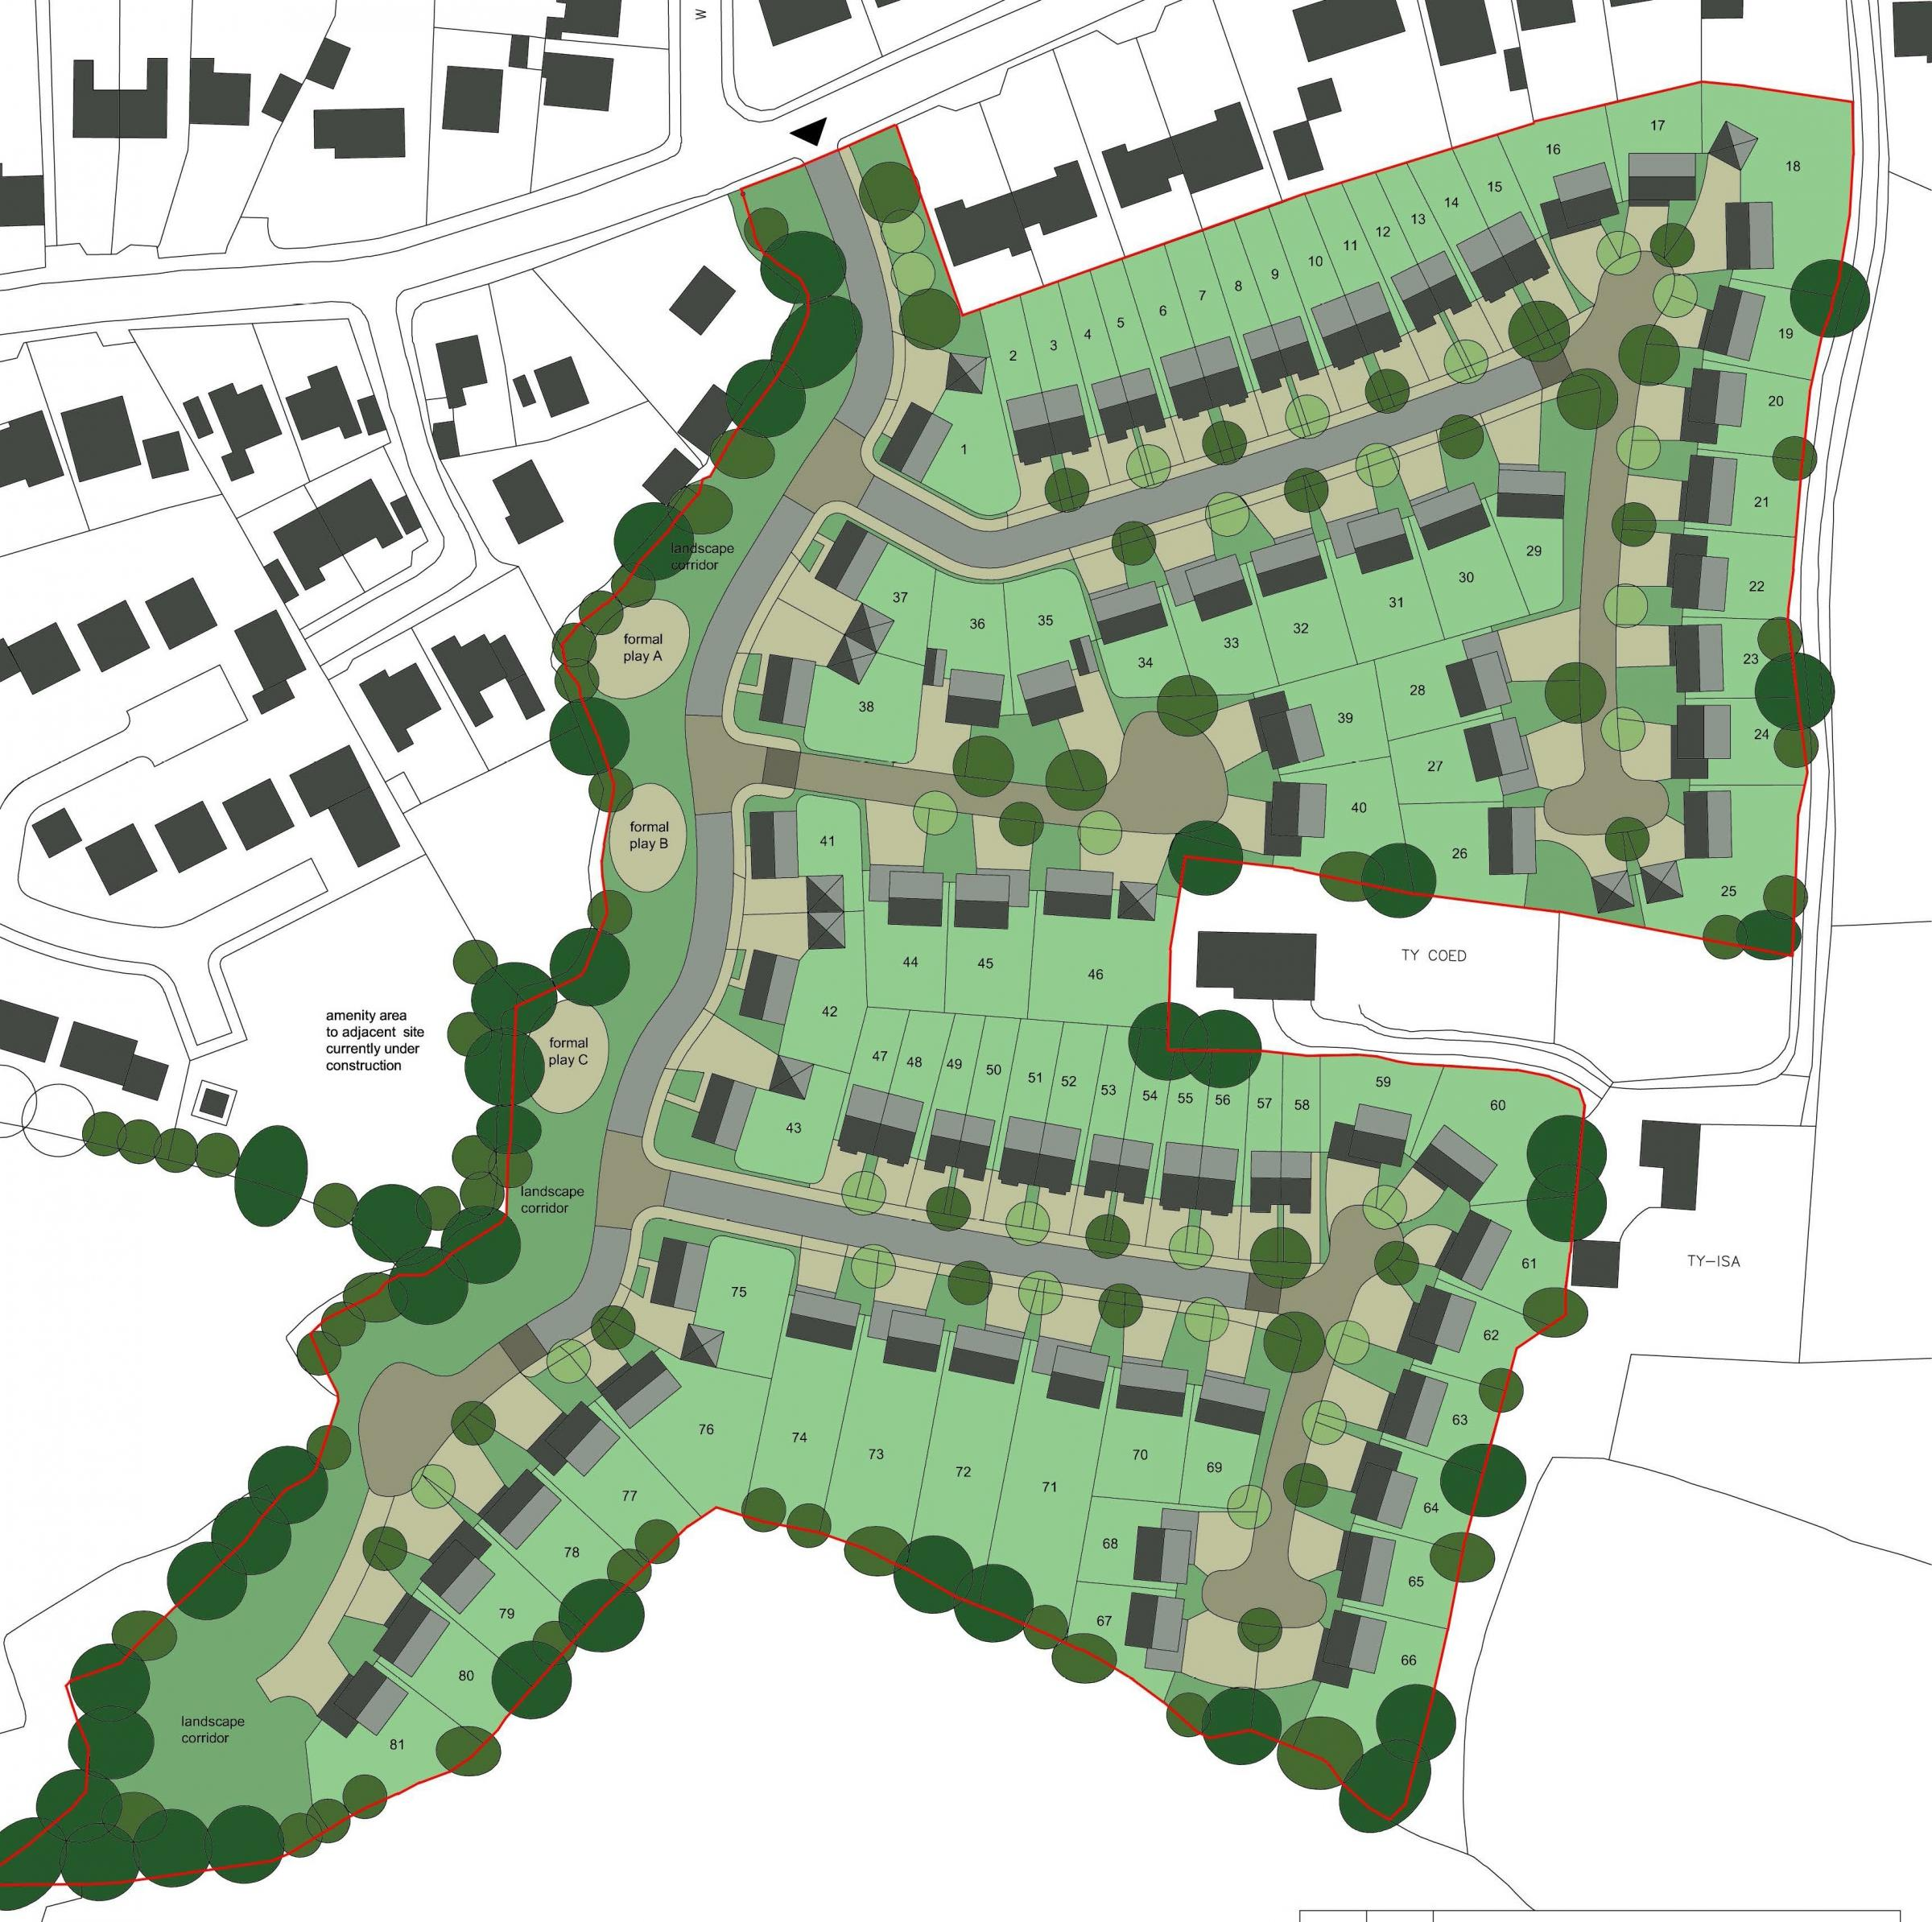 Plans for 85 new homes on Meg\'s Lane, Buckley look set to be rejected. Source: Planning document